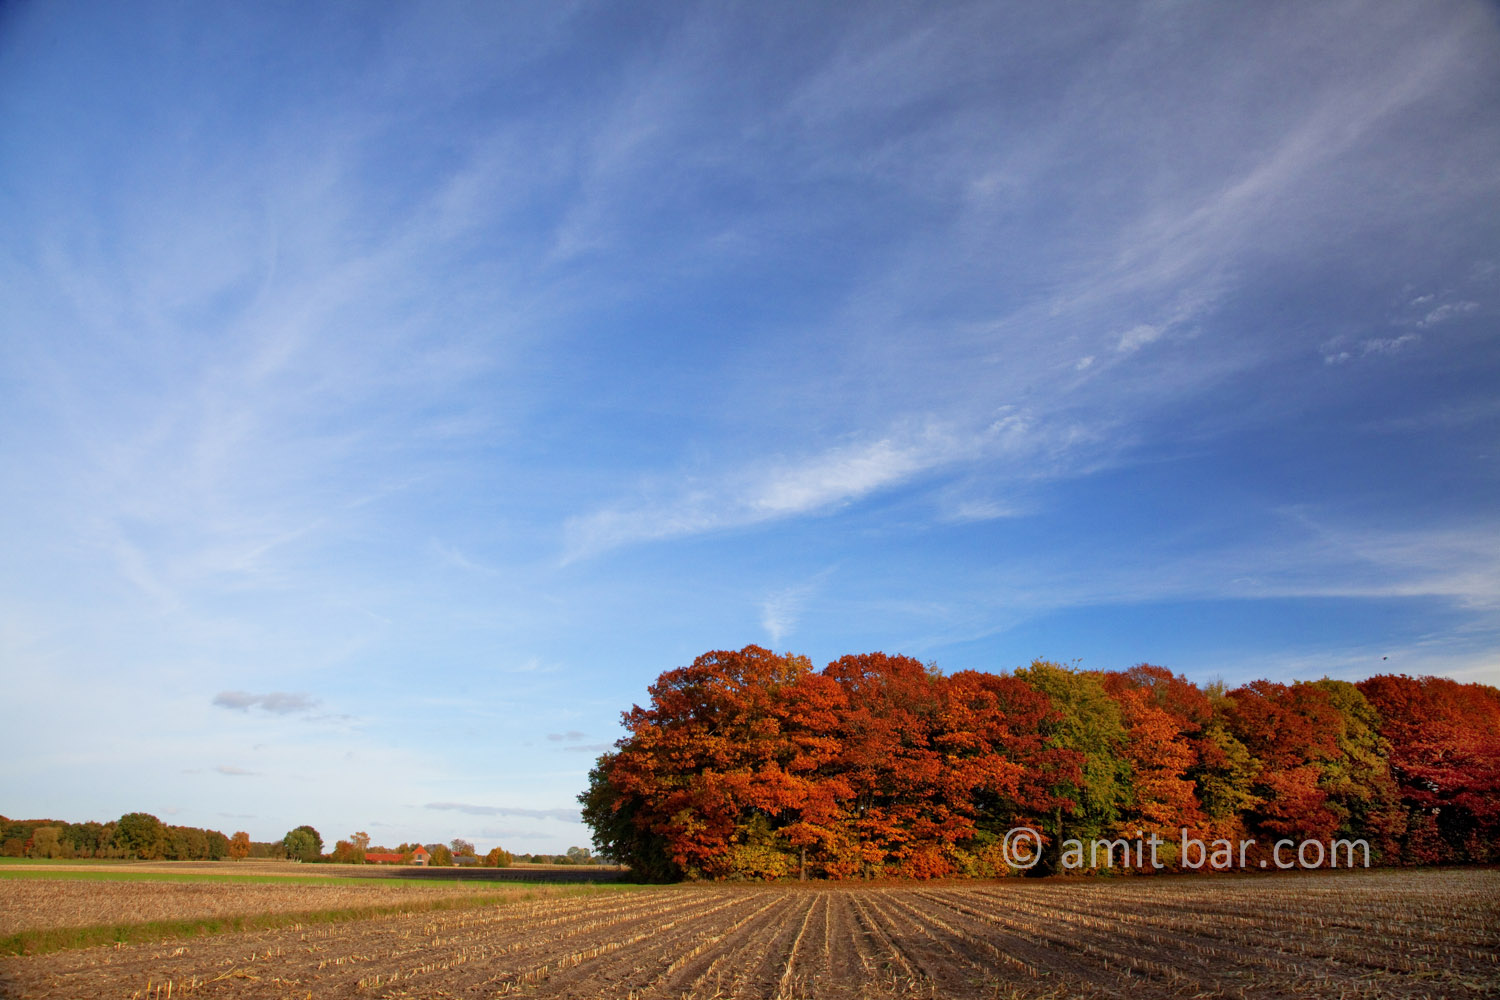 Autumn trees IV: Autumn in De Achterhoek, The Netherlands